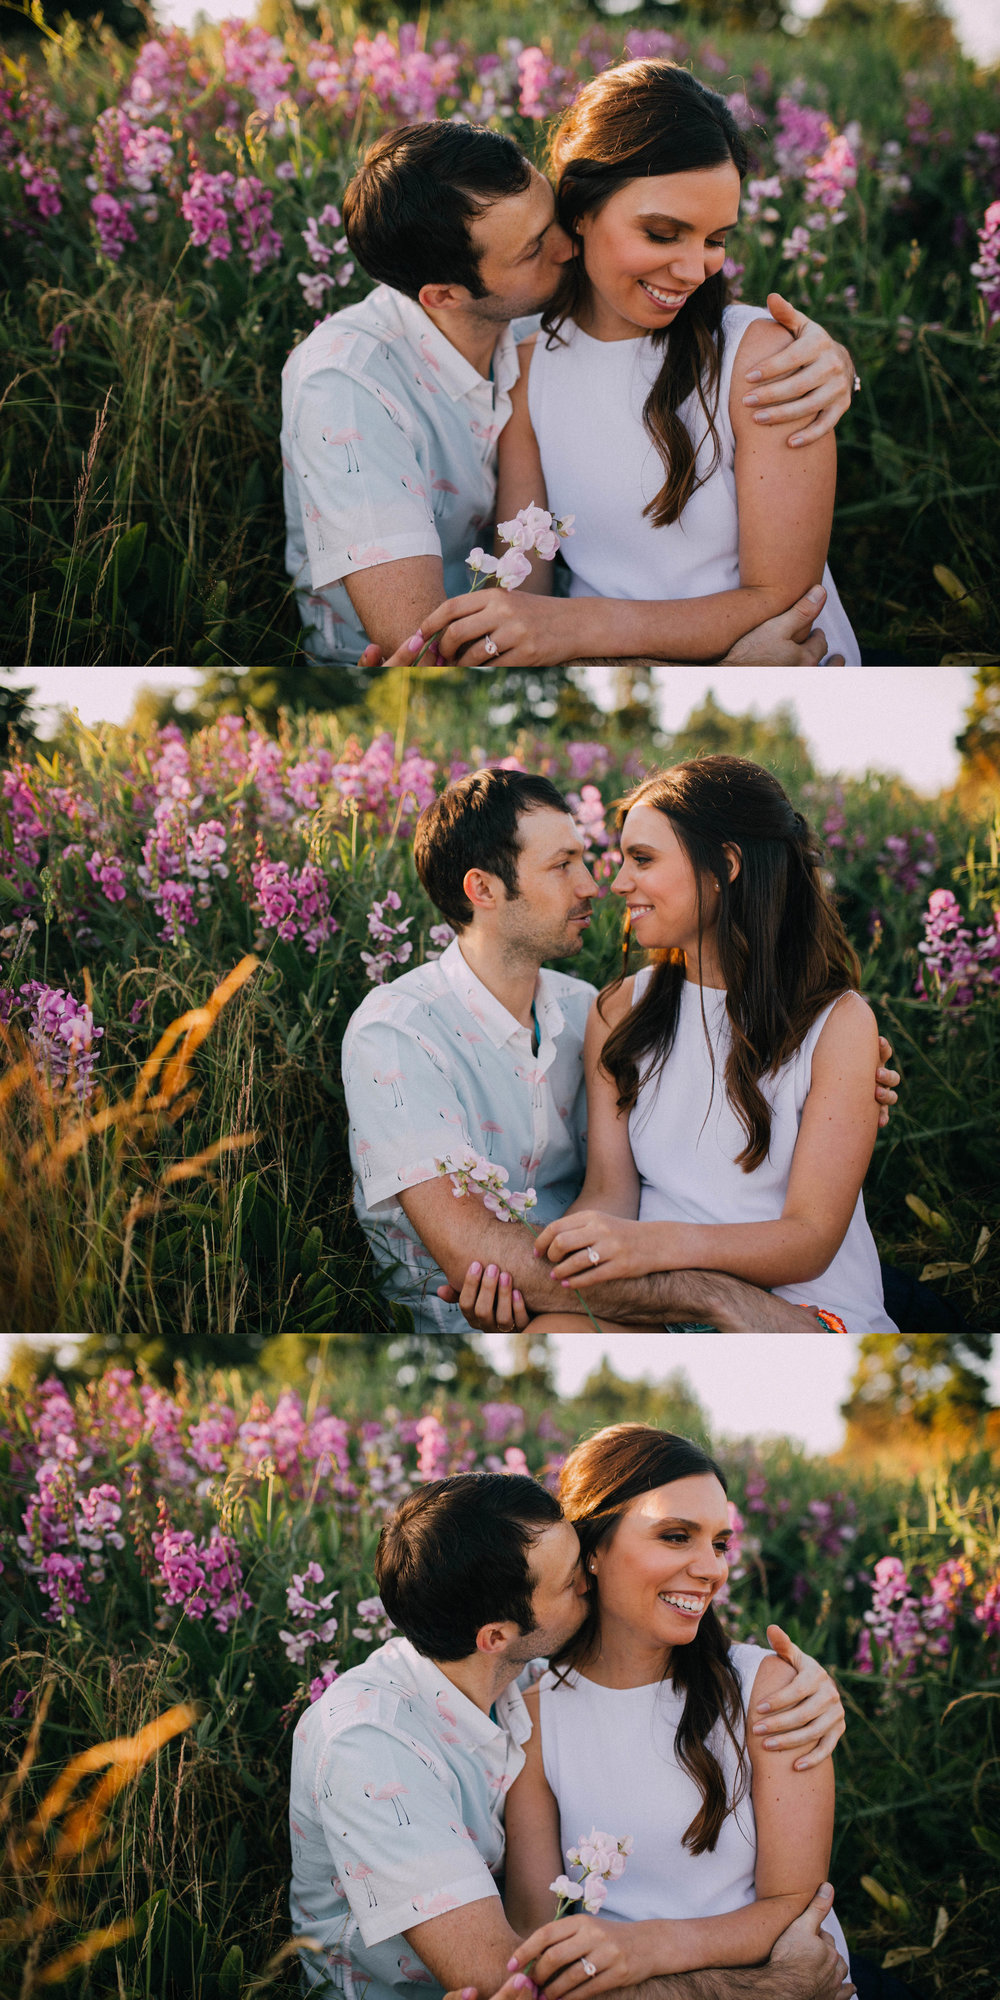 discovery park engagement photography seattle washington wedding photographer romantic-246.jpg